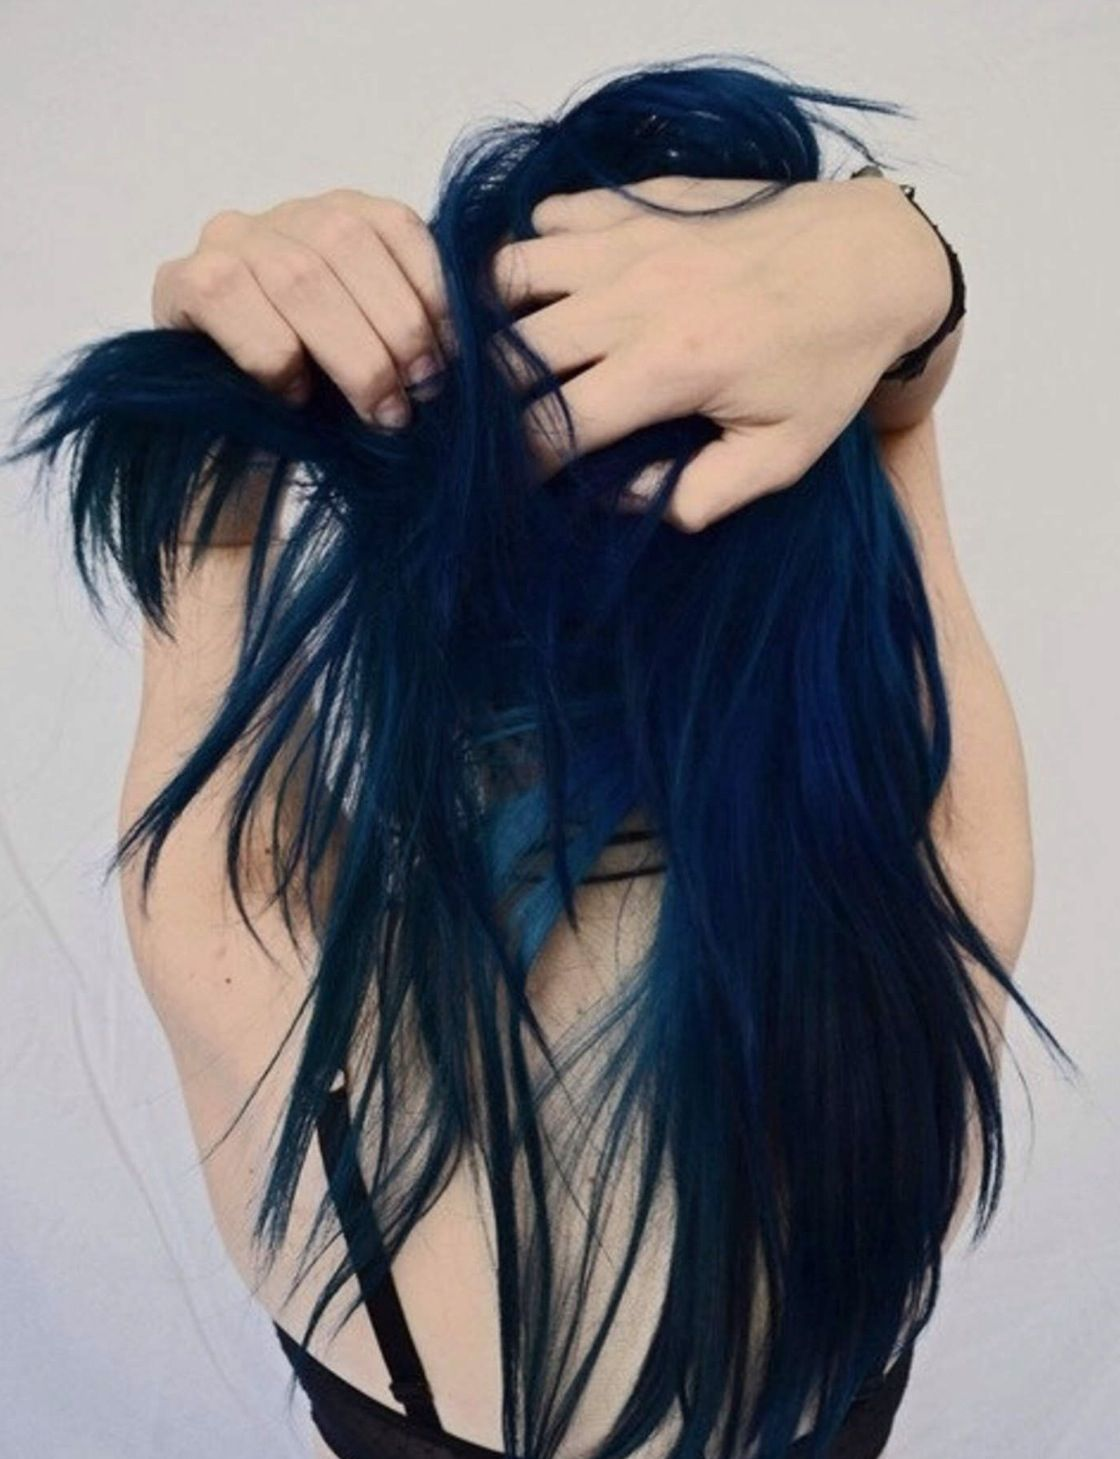 Pin by maymay bps on girls in pinterest hair blue hair and